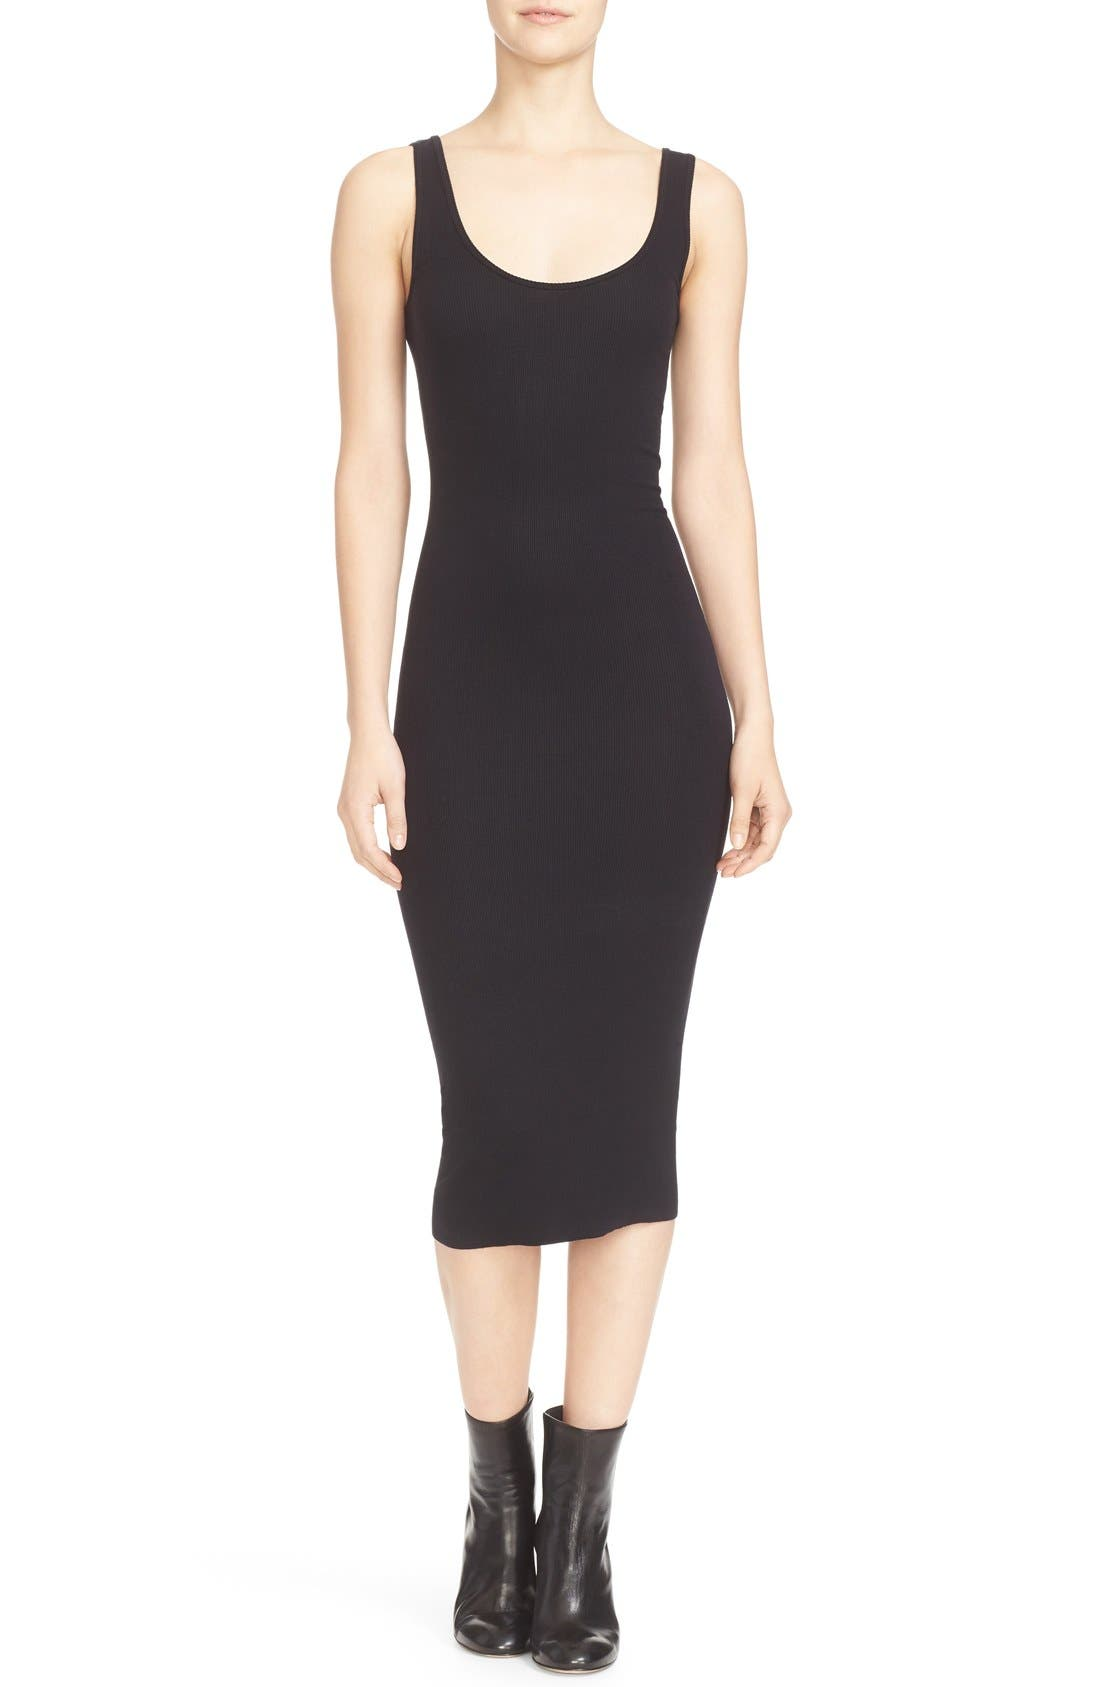 Twenty Rib Tank Dress (Nordstrom Exclusive)